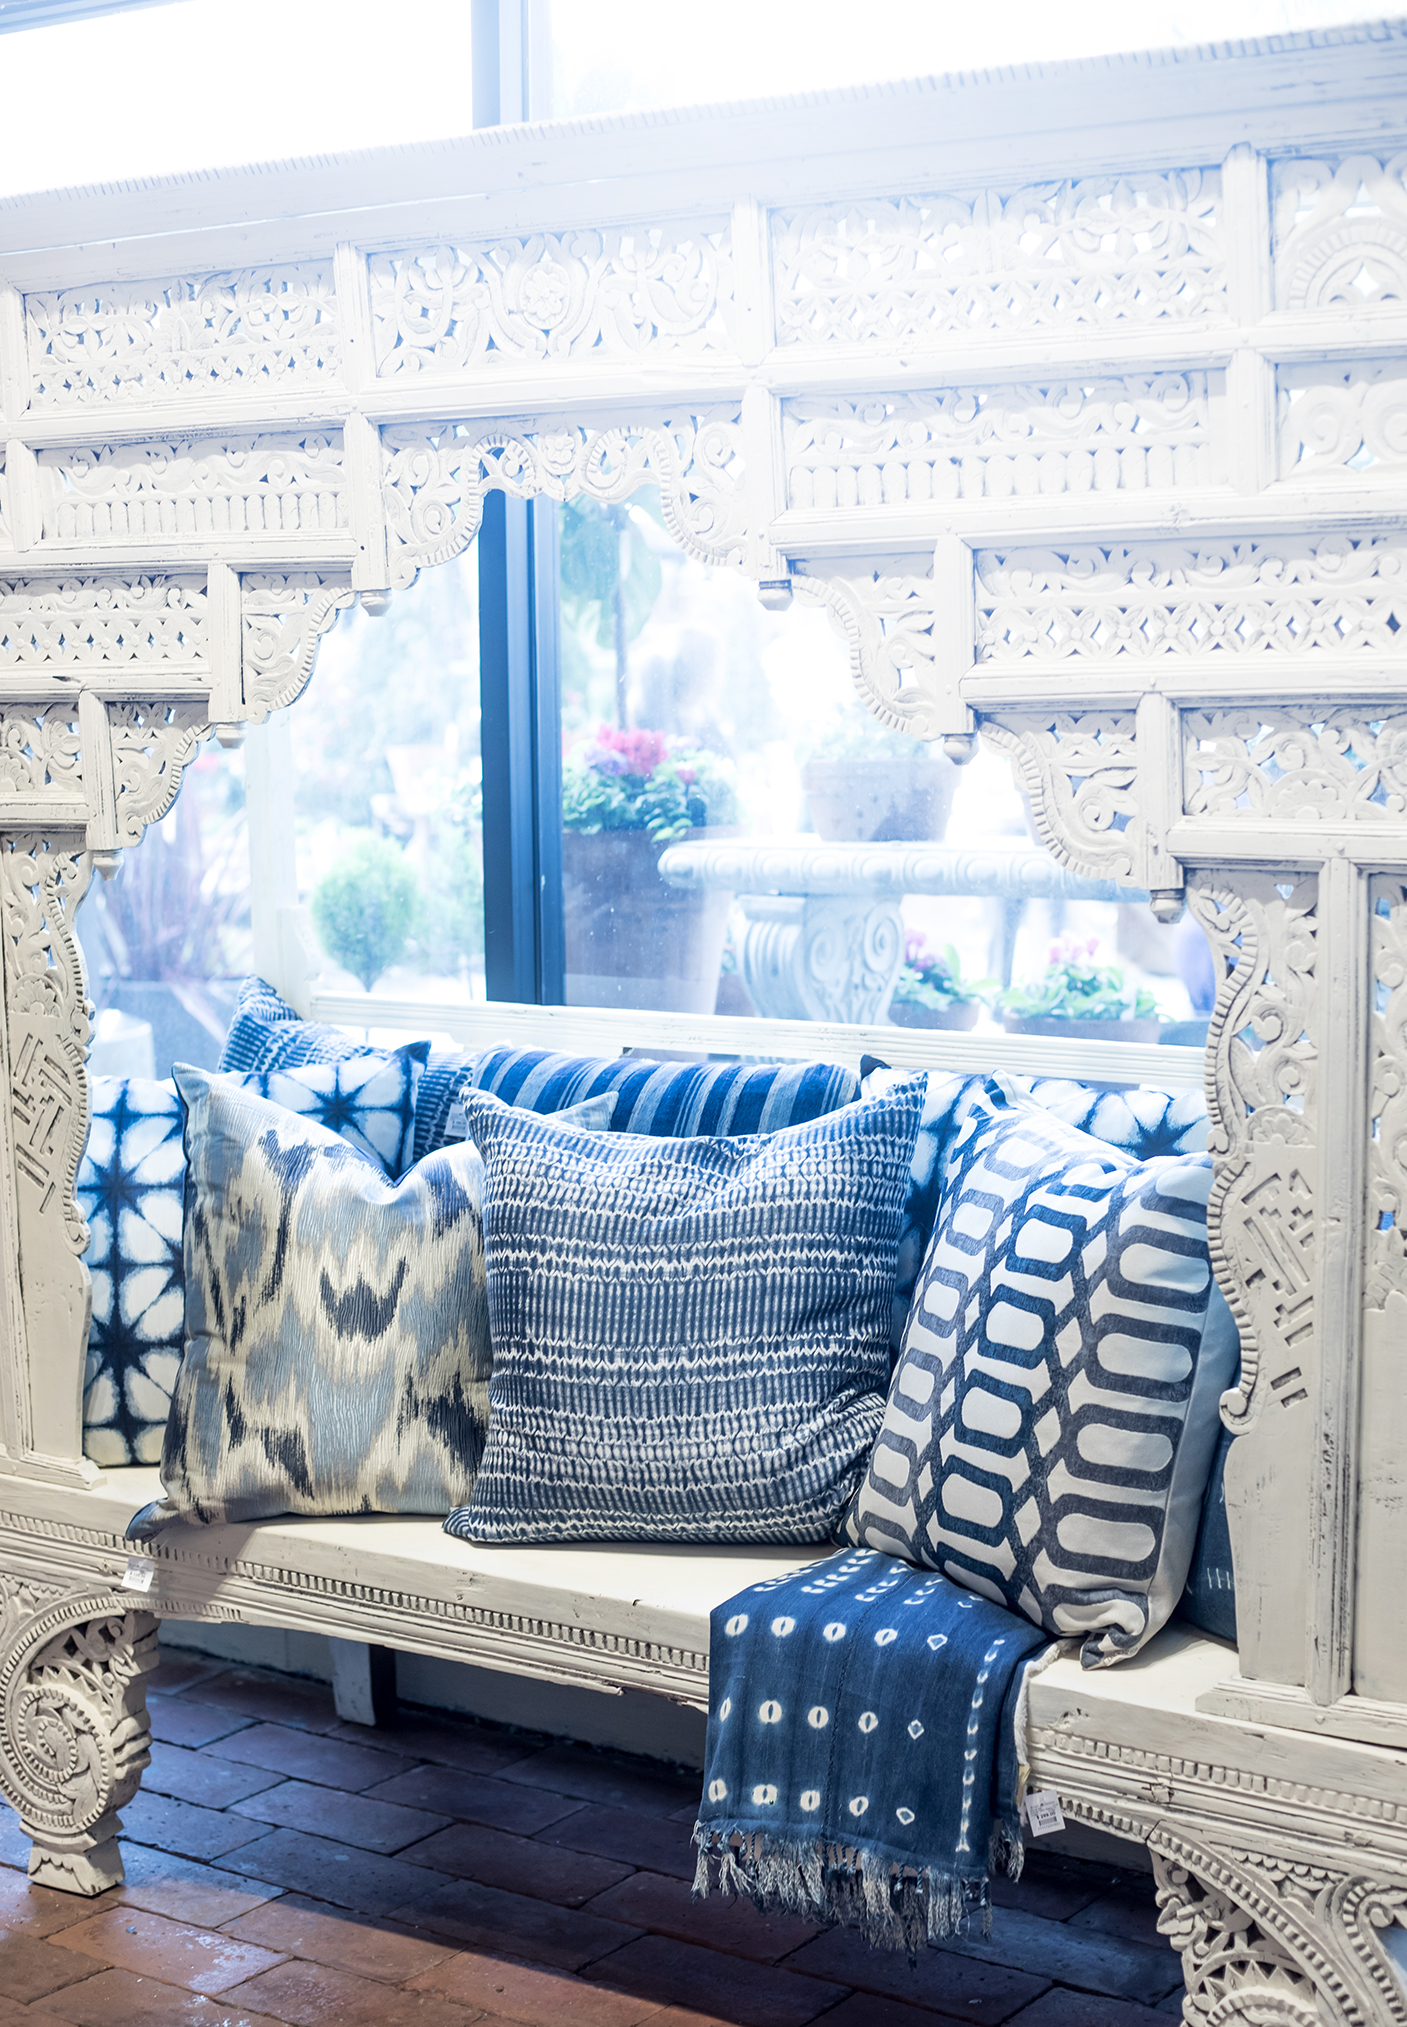 Intricate White Bench with Blue Decor